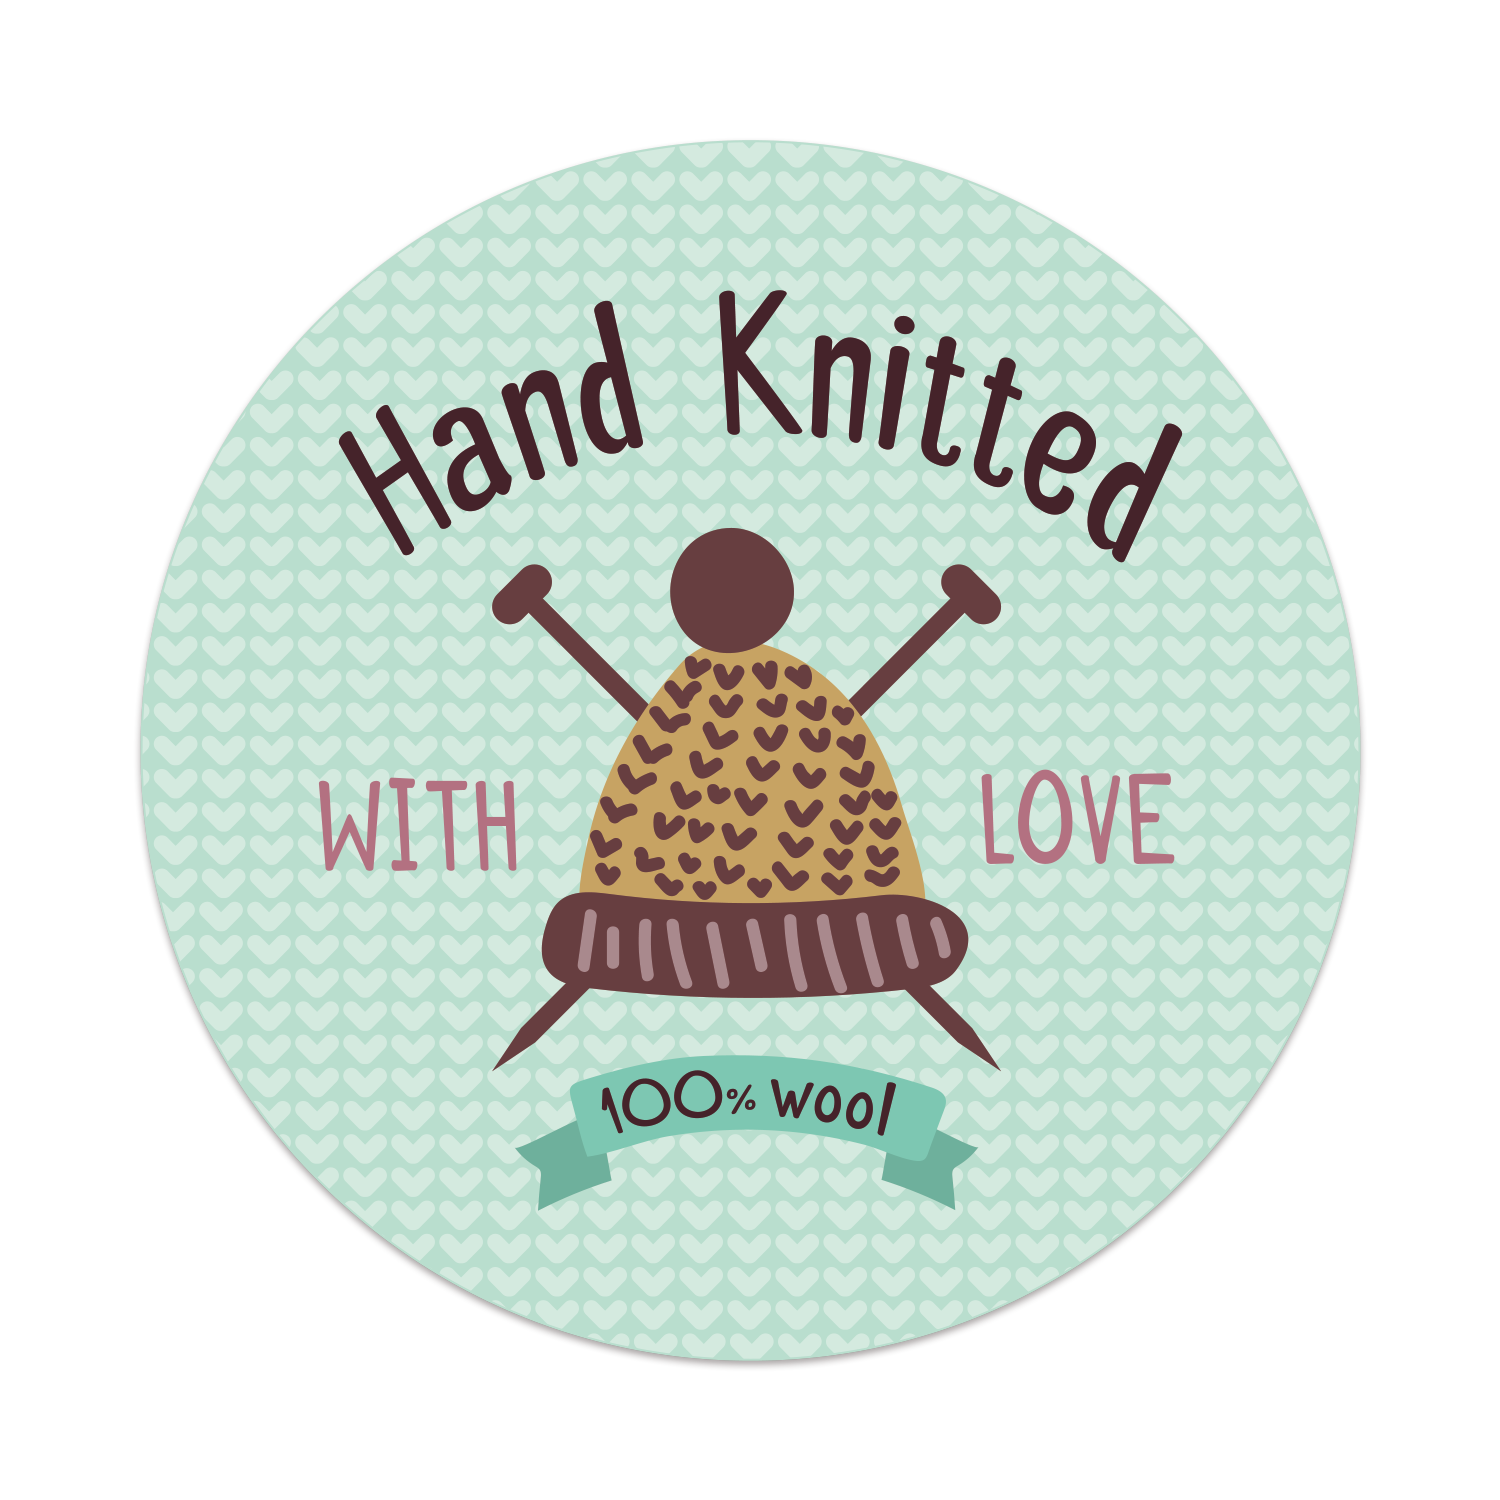 https://www.sswprinting.com/images/products_gallery_images/182402_Hand-Knitted-with-Love_hi-res18.png